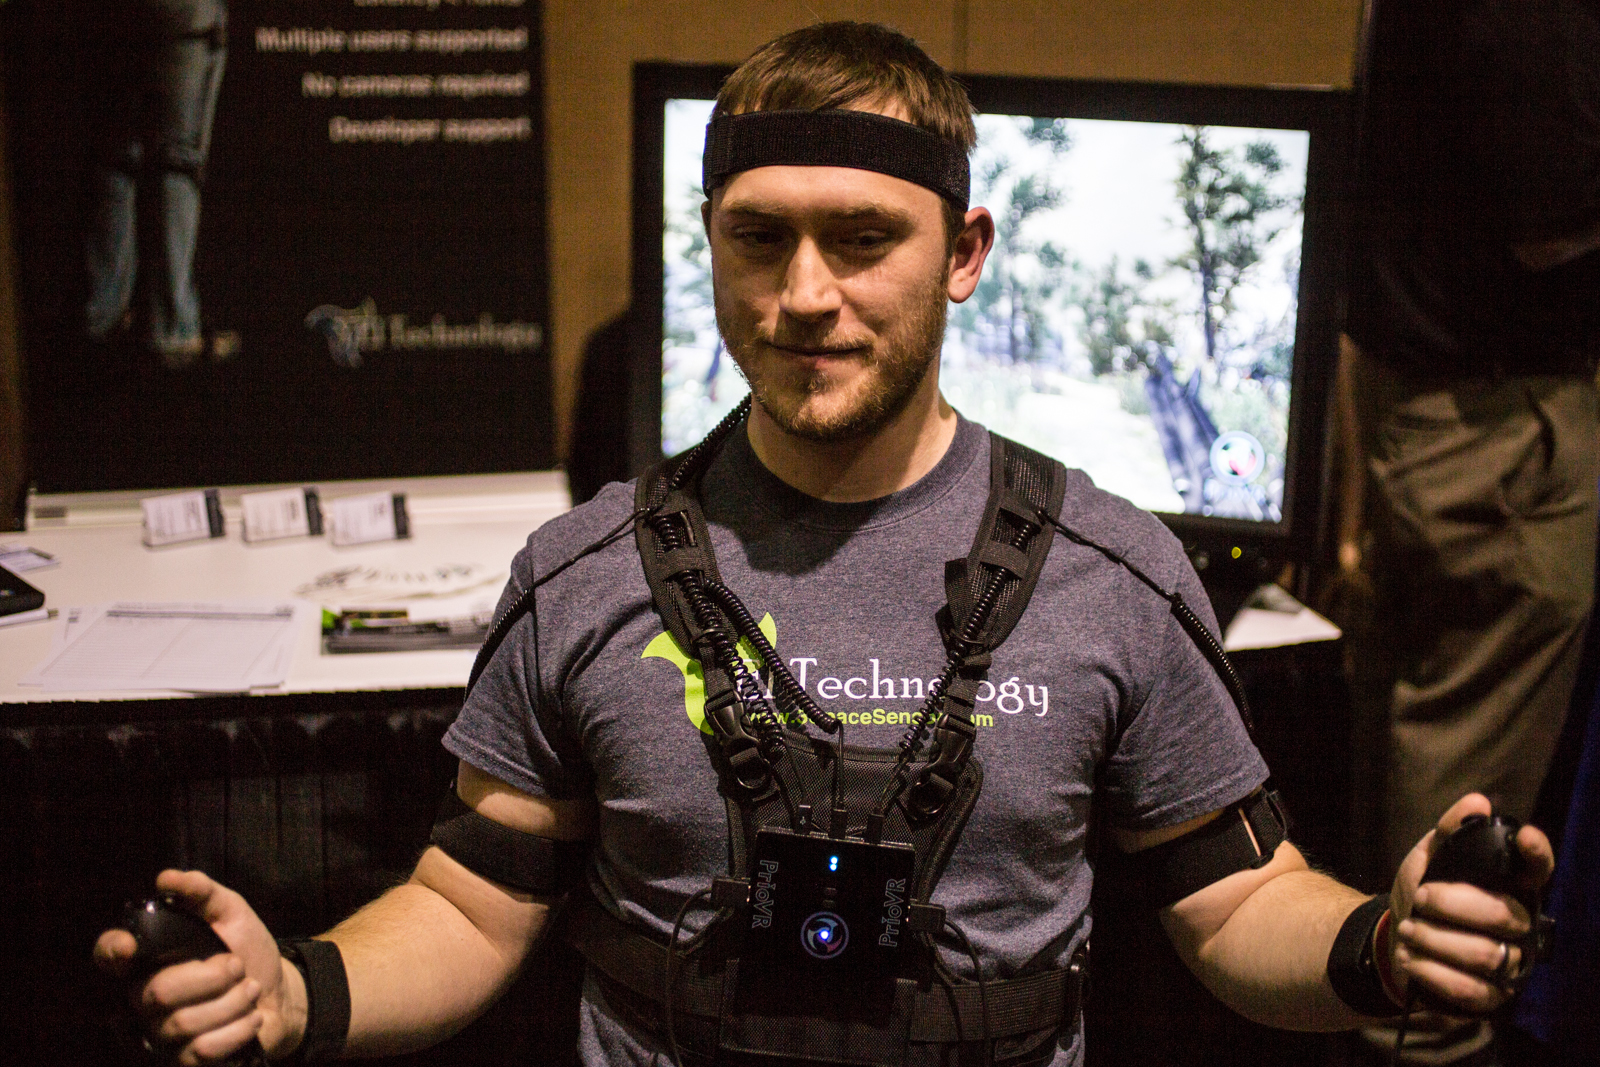 PrioVR tracking suit